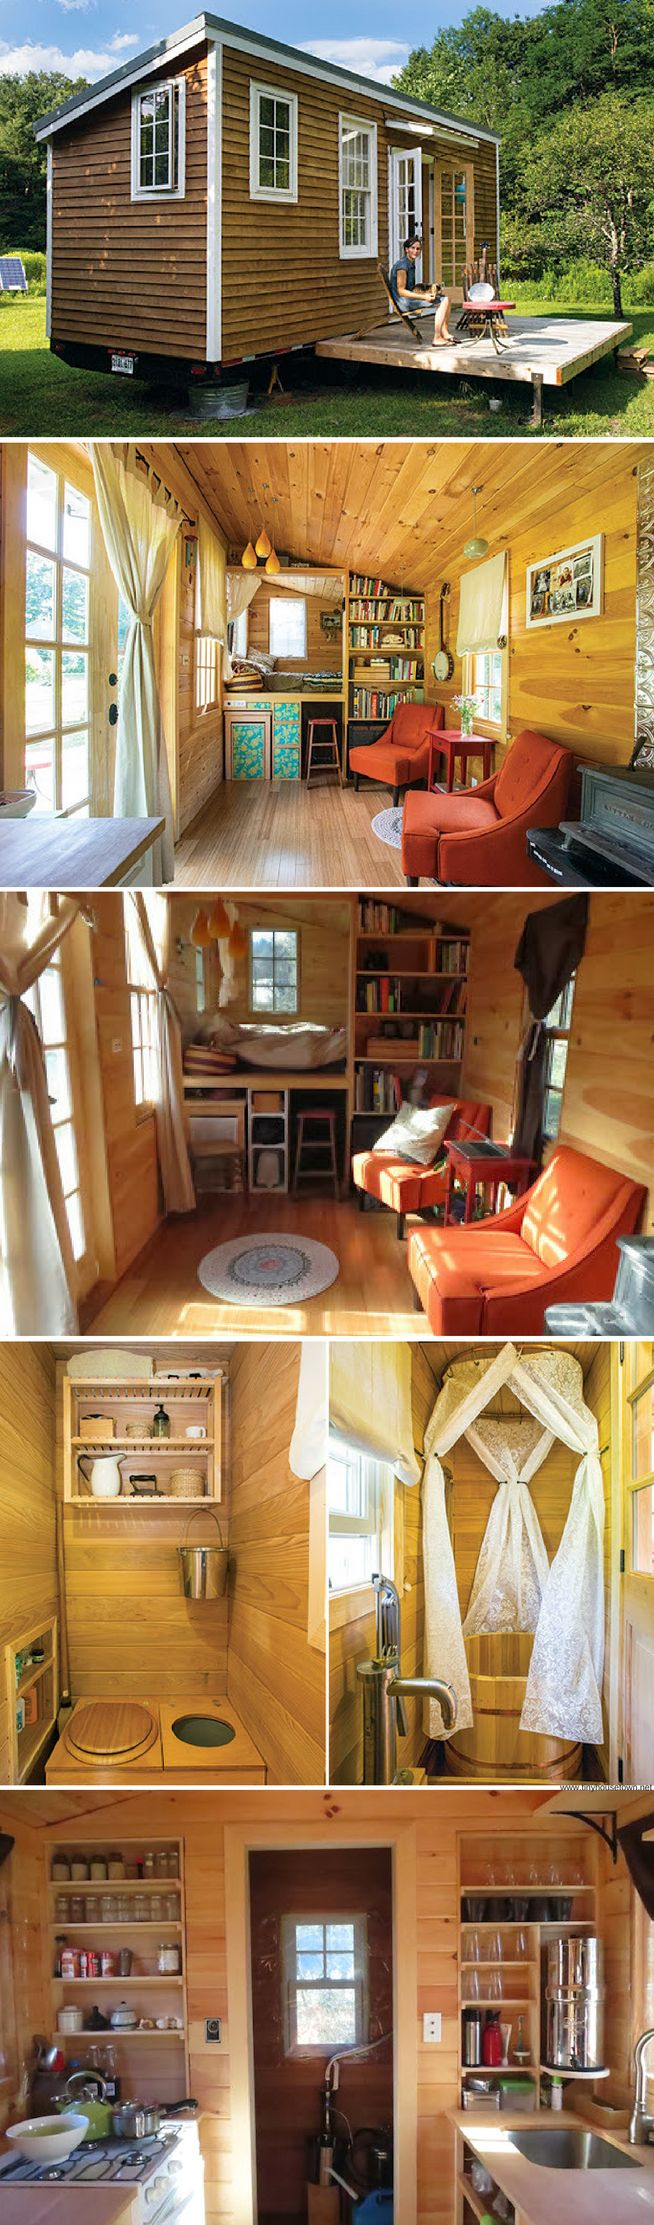 A Tiny House In Poughkeepsie, NY Part 39